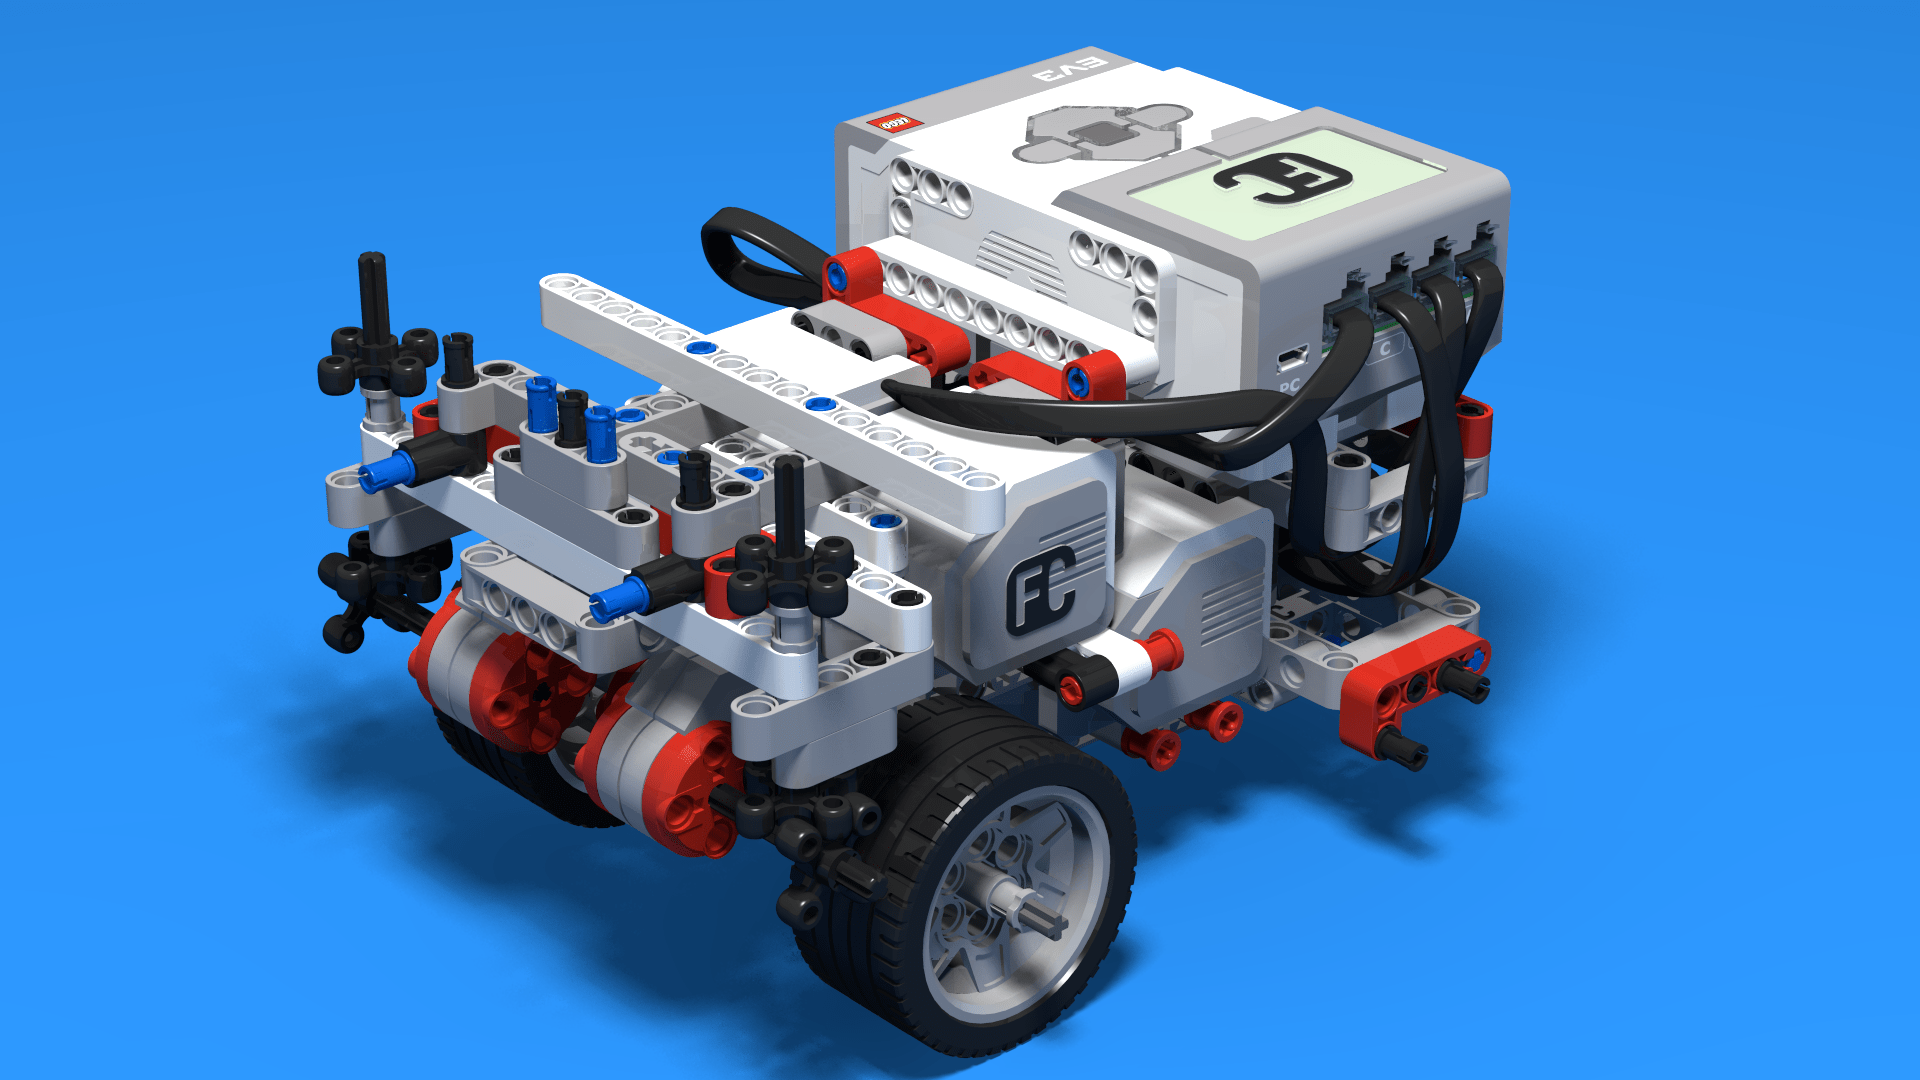 Lego Mindstorms Ev3 Complex Robot Instructions - Year of Clean Water